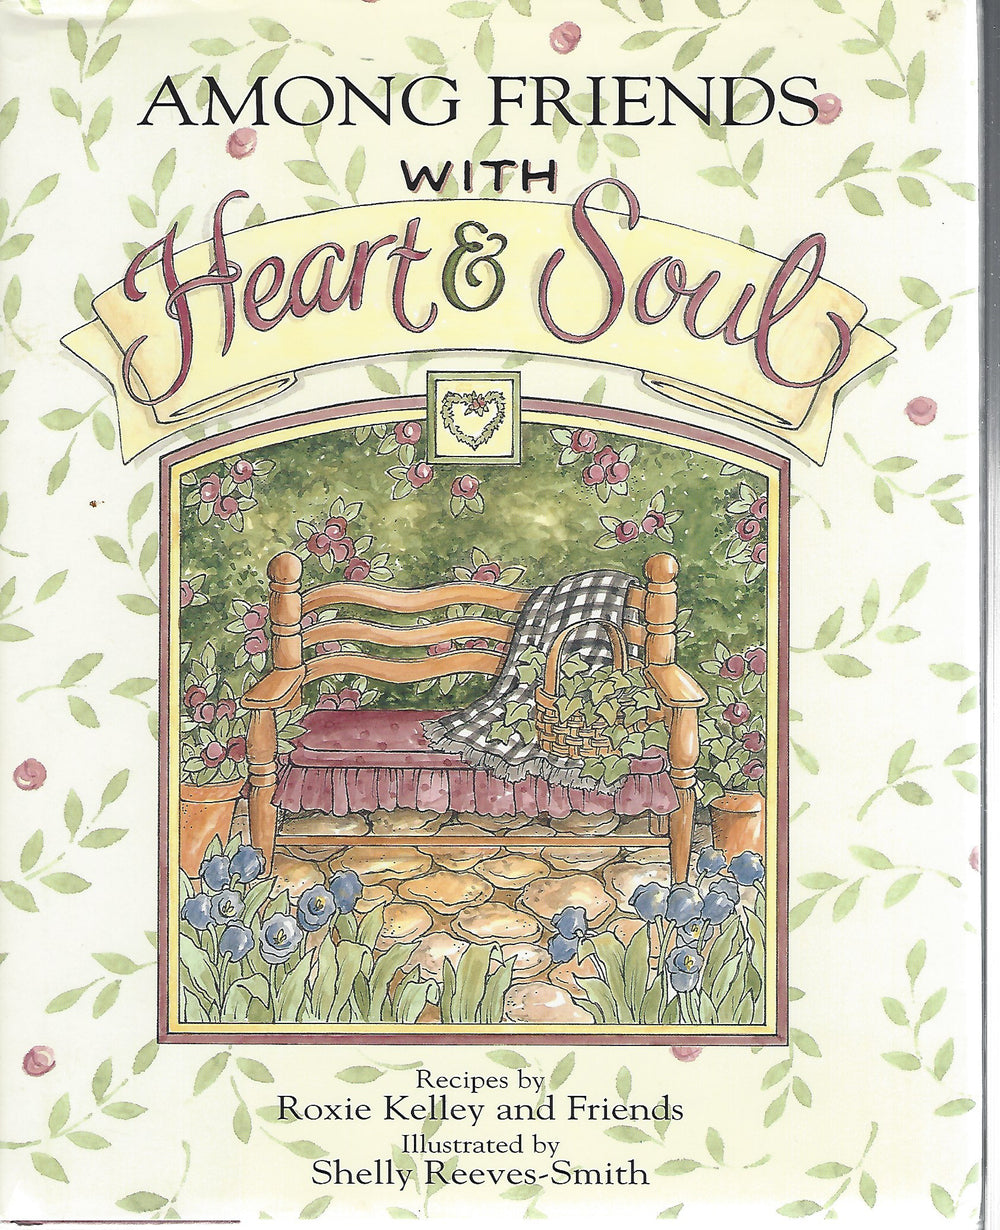 Among Friends with Heart & Soul by Roxie Kelley and Friends   Hardcover 1998